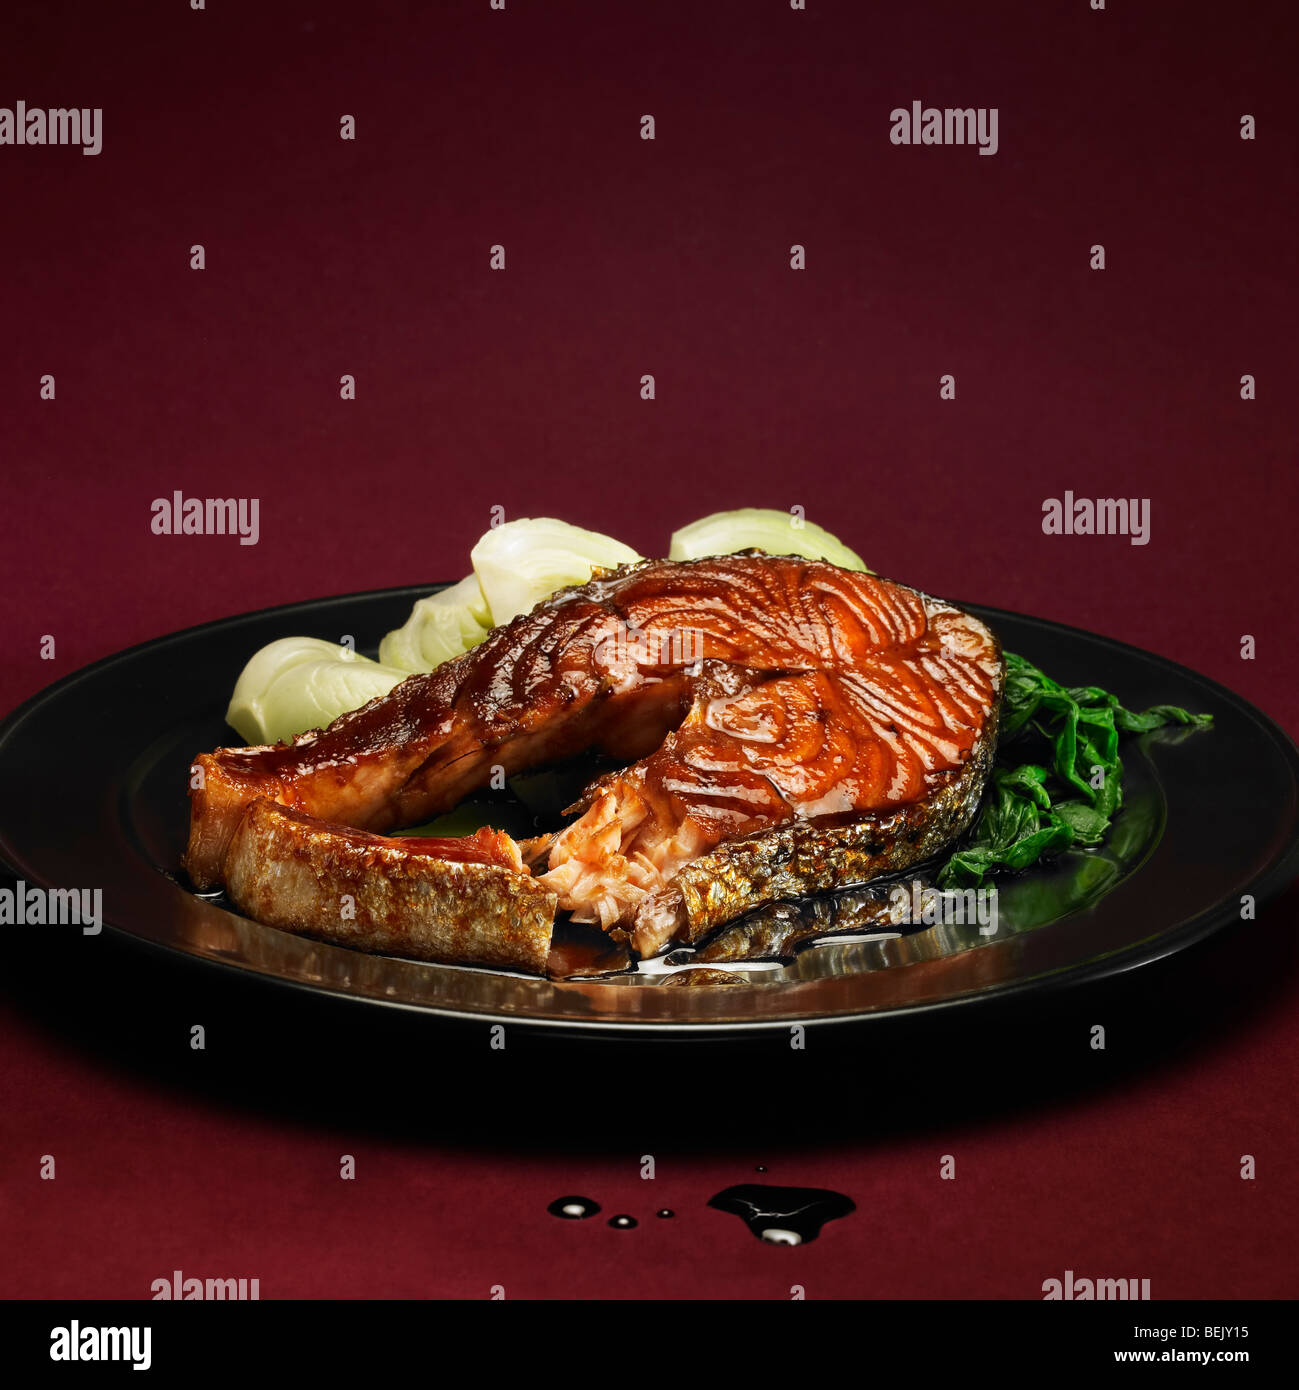 Saumon grillé avec pak-choï (bok choy) Photo Stock